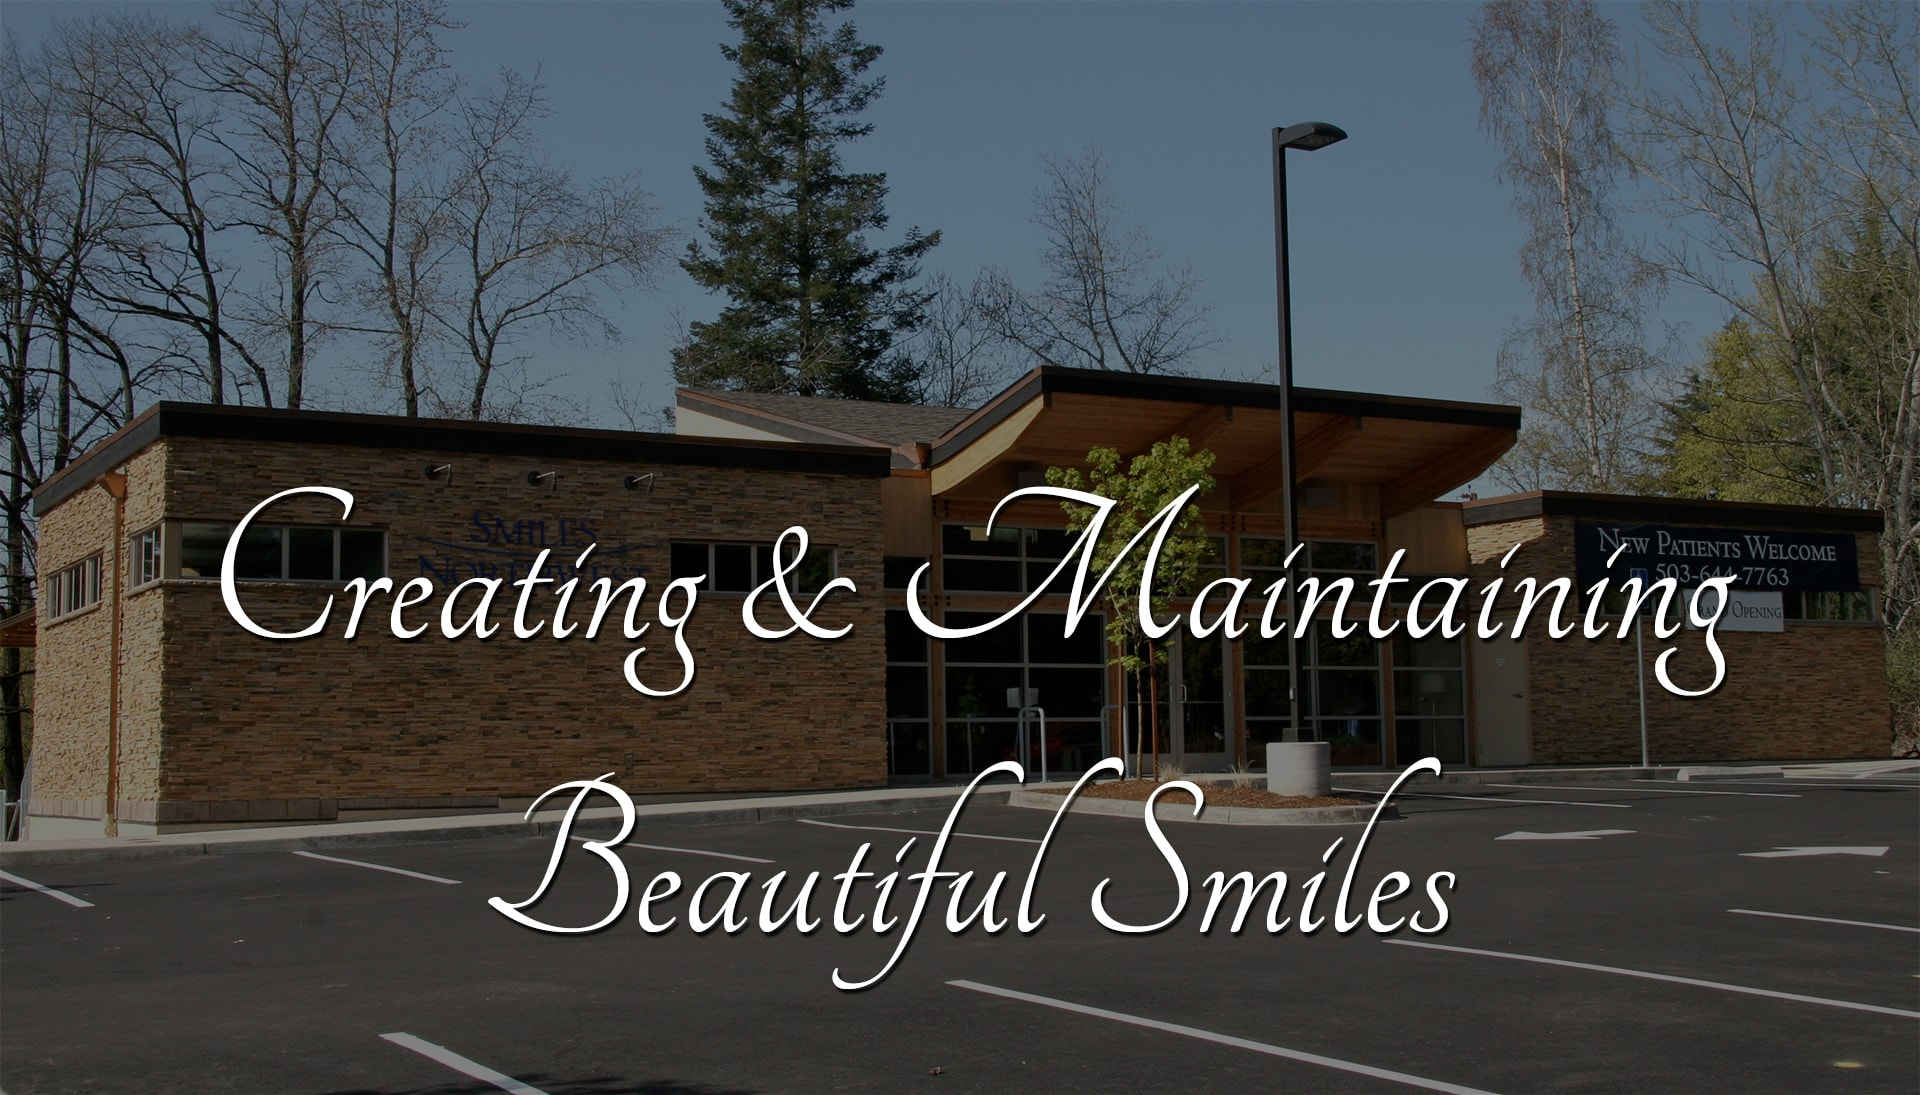 Dentists in Beaverton who focus on giving patient's the smile of their dreams.